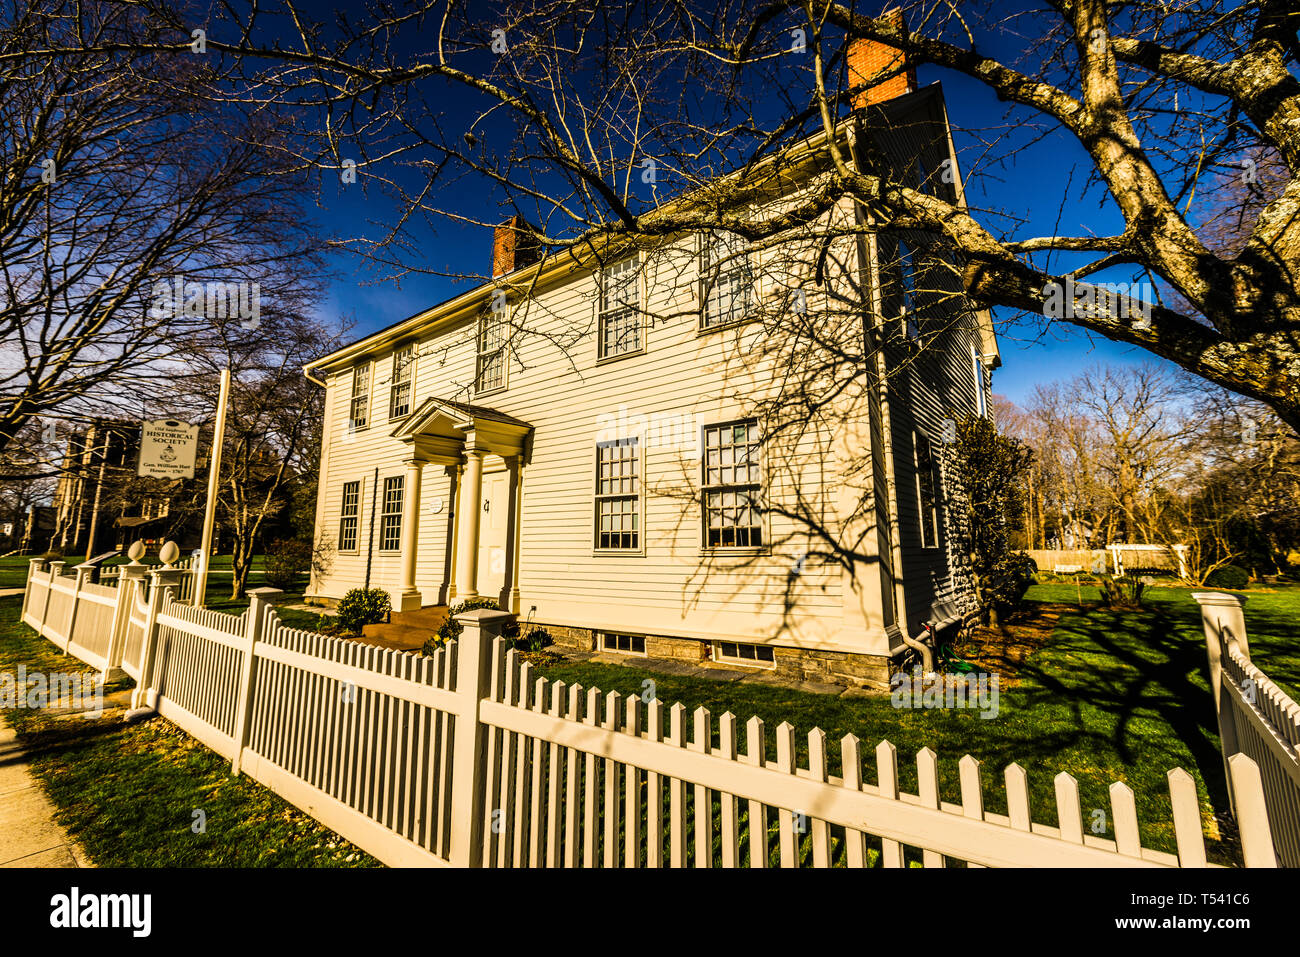 Gen. William Hart House Old Saybrook South Green_ Old Saybrook, Connecticut, USA - Stock Image